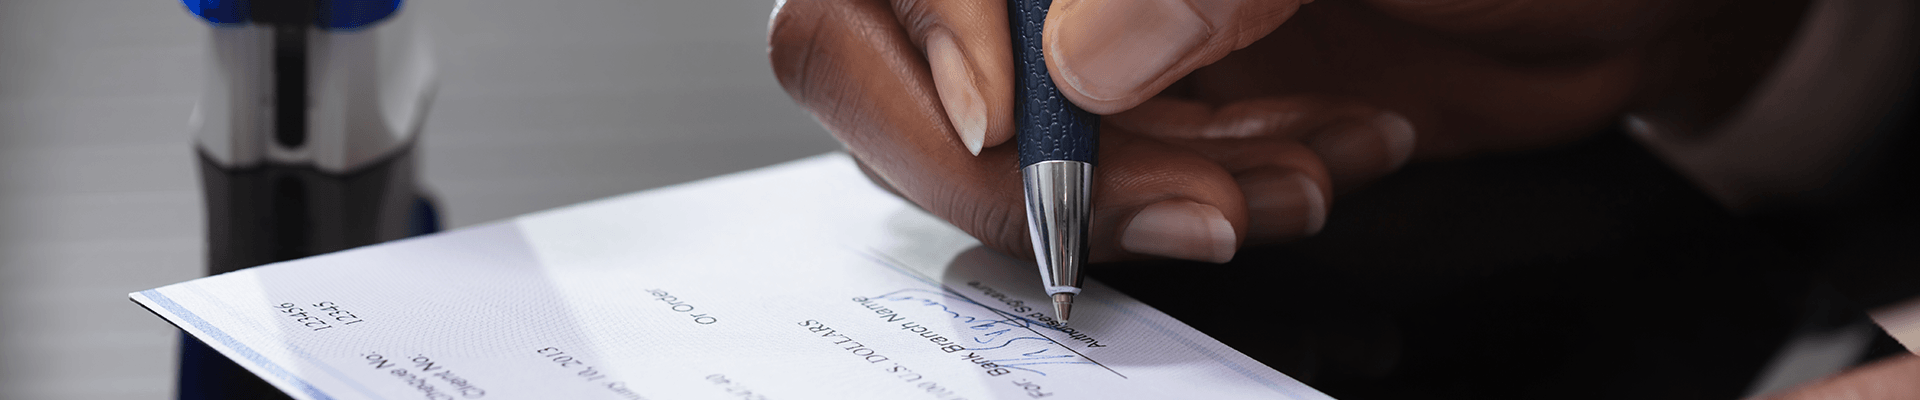 writing a personal check